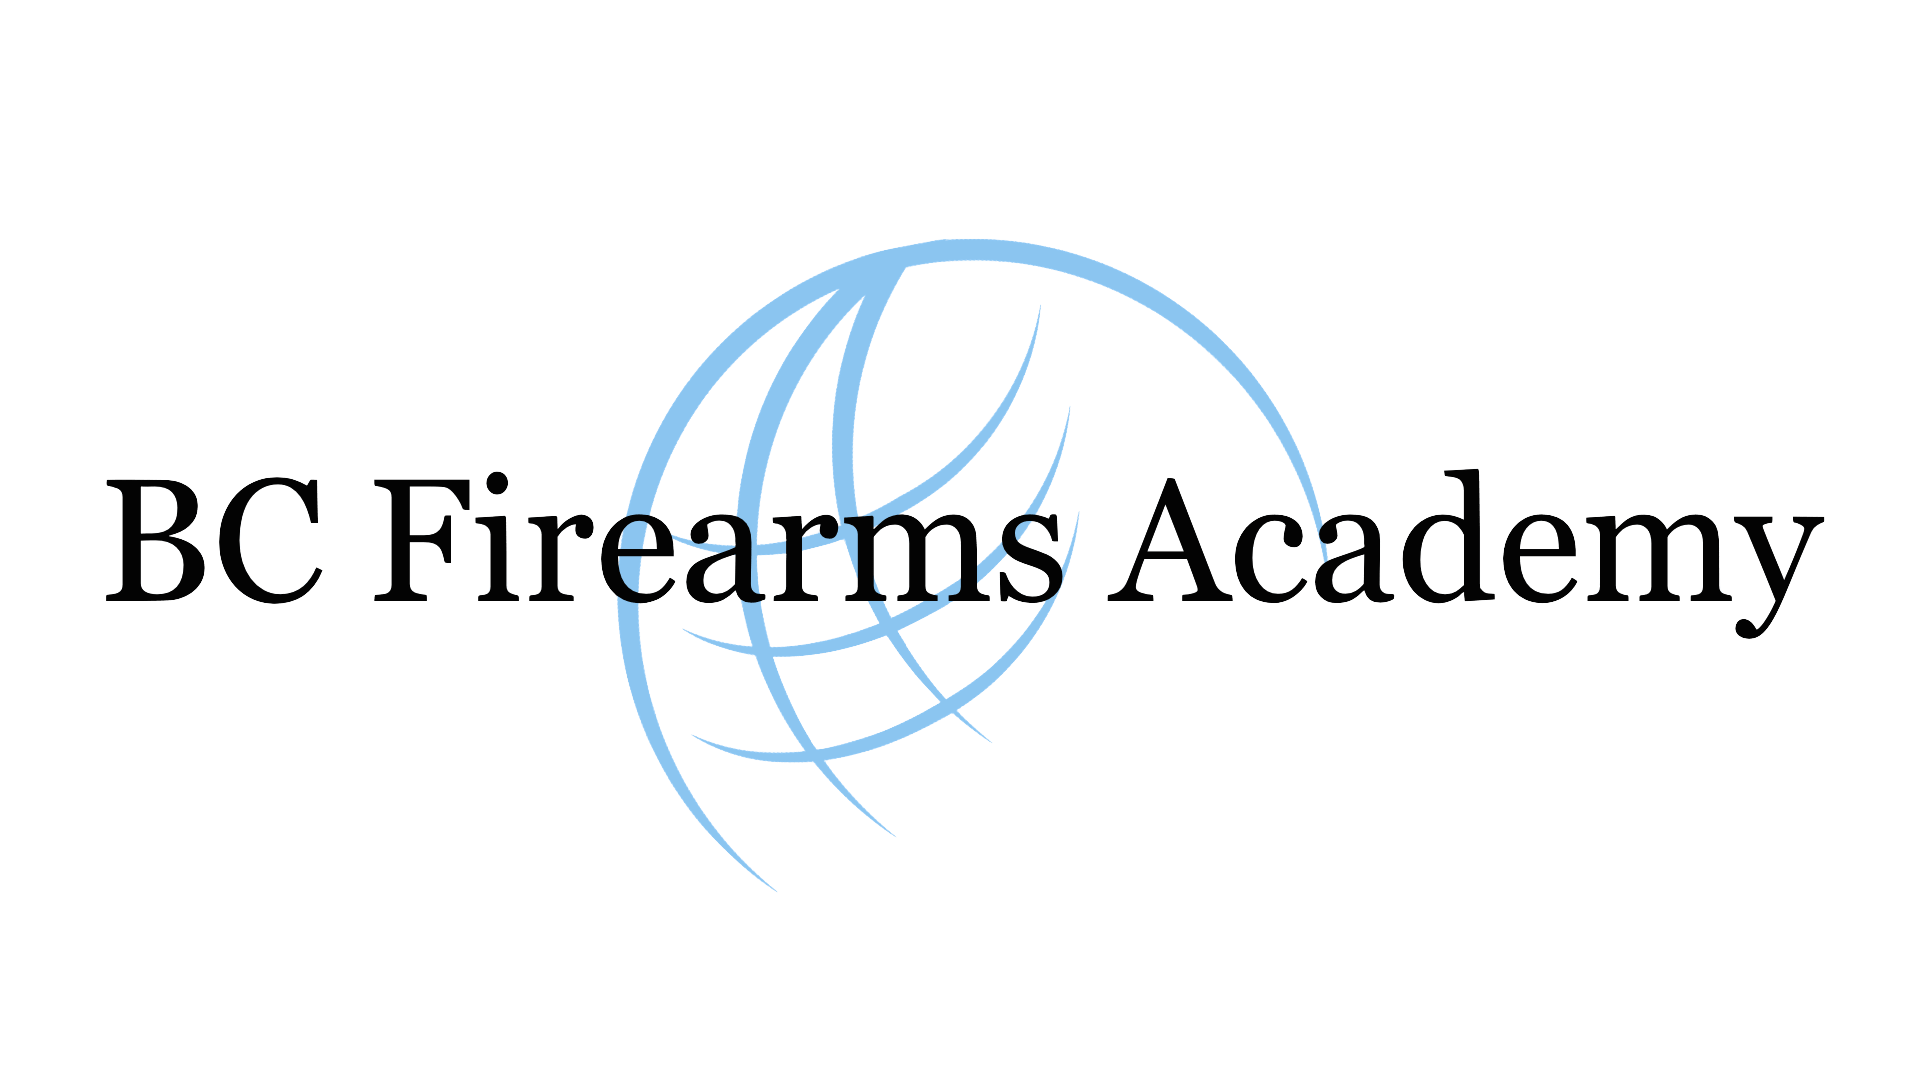 FREE FUN FIREARMS AND HUNTING QUIZZES